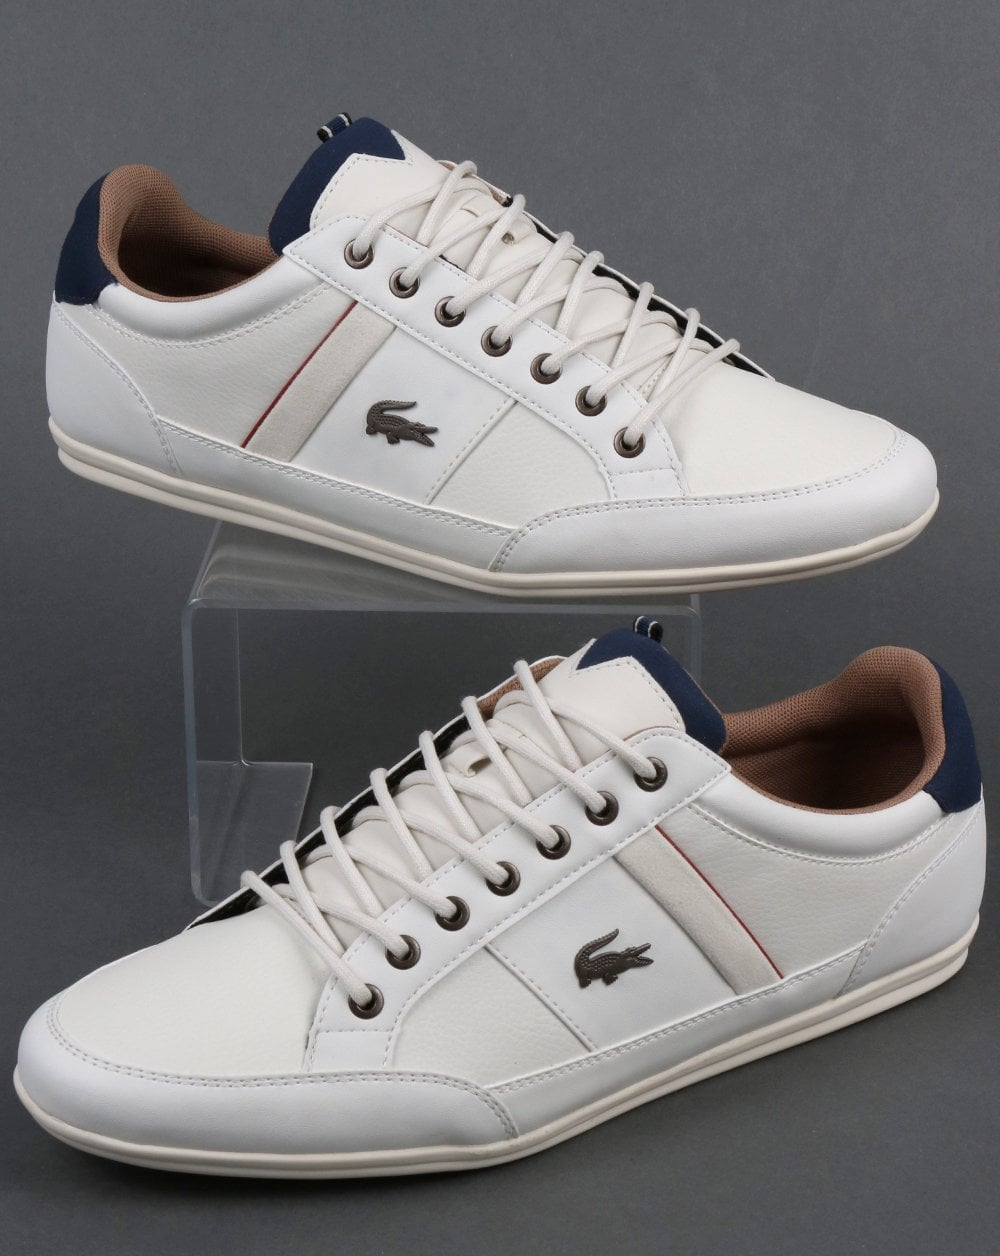 d81bd053377a Lacoste Lacoste Chaymon Trainers Off White Navy